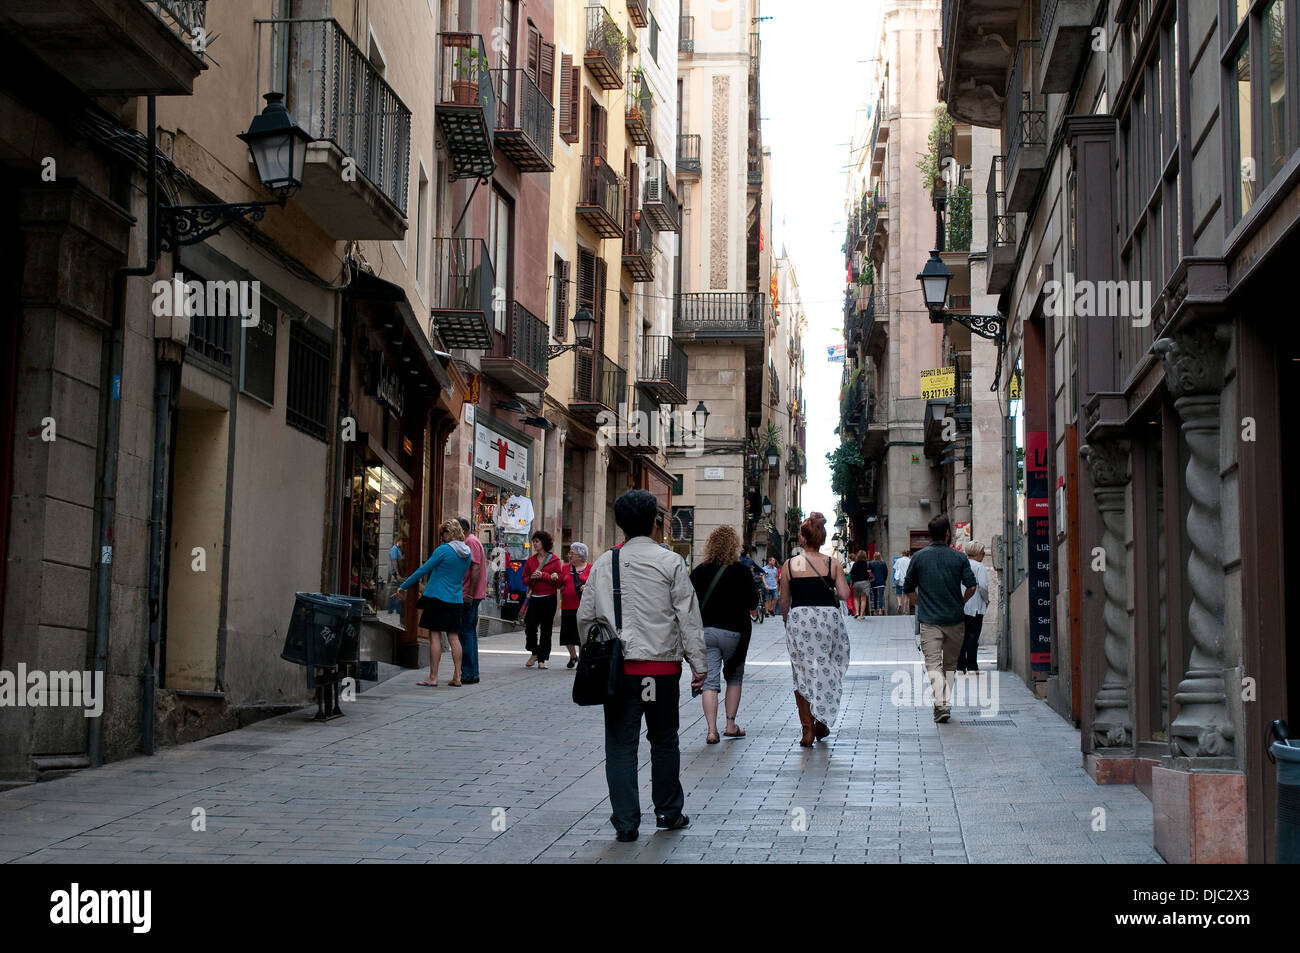 Pedestrianized street in the Old Town, Barcelona, Spain - Stock Image